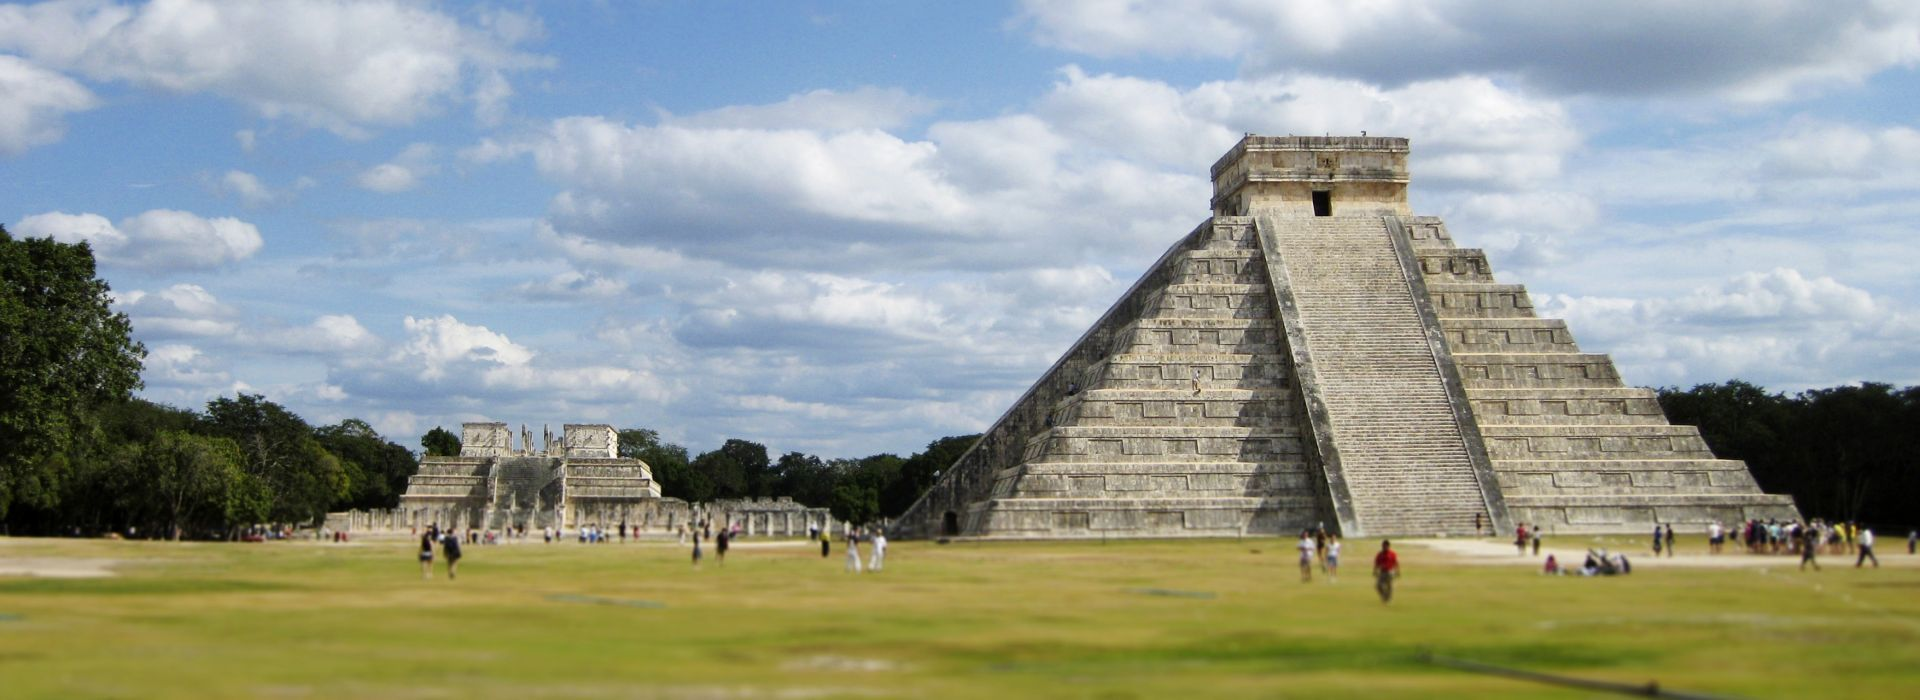 Air tours, road trips and transfers in Mexico City